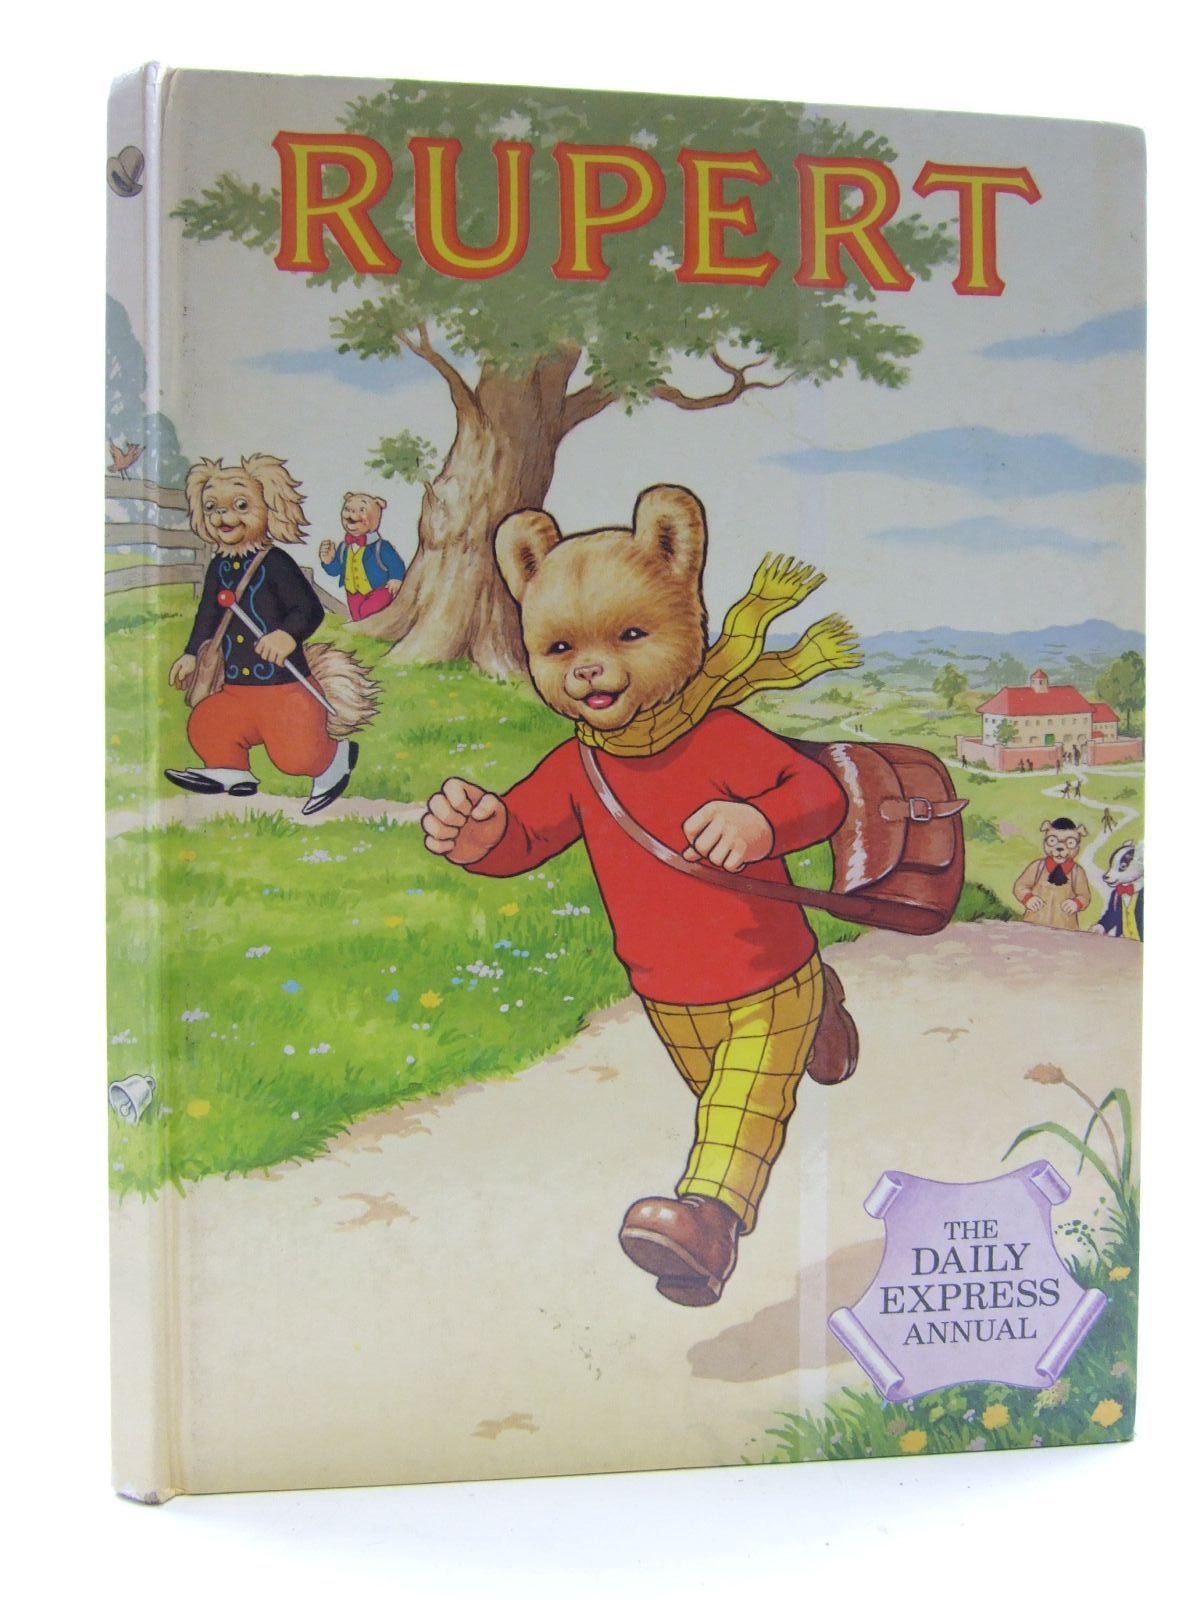 Photo of RUPERT ANNUAL 1984 illustrated by Harrold, John published by Express Newspapers Ltd. (STOCK CODE: 1707547)  for sale by Stella & Rose's Books